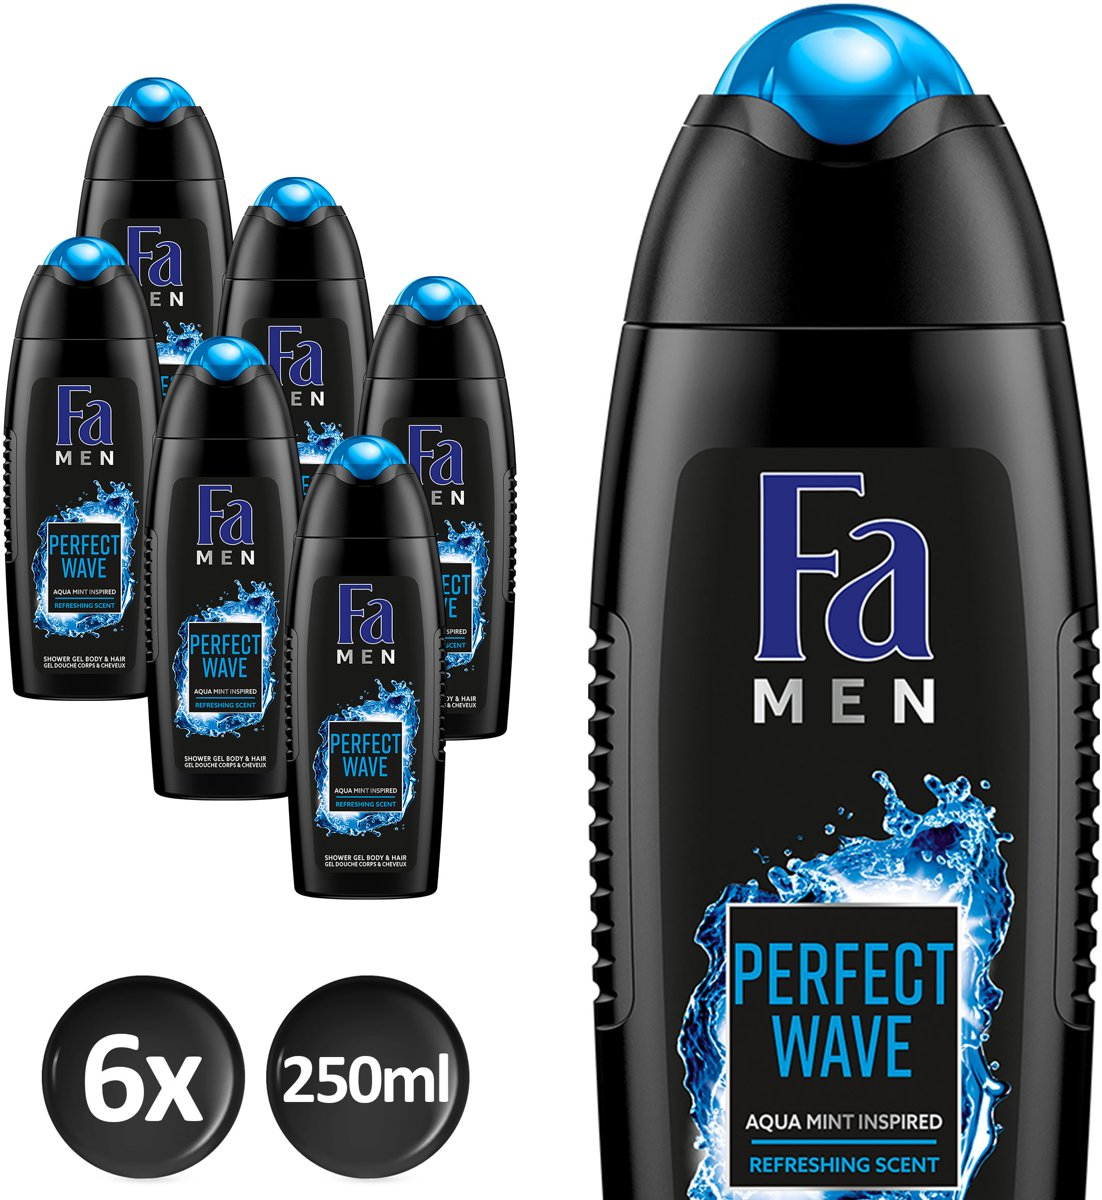 Fa Perfect Wave - 6x 250 ml - Voordeelverpakking - Douchegel